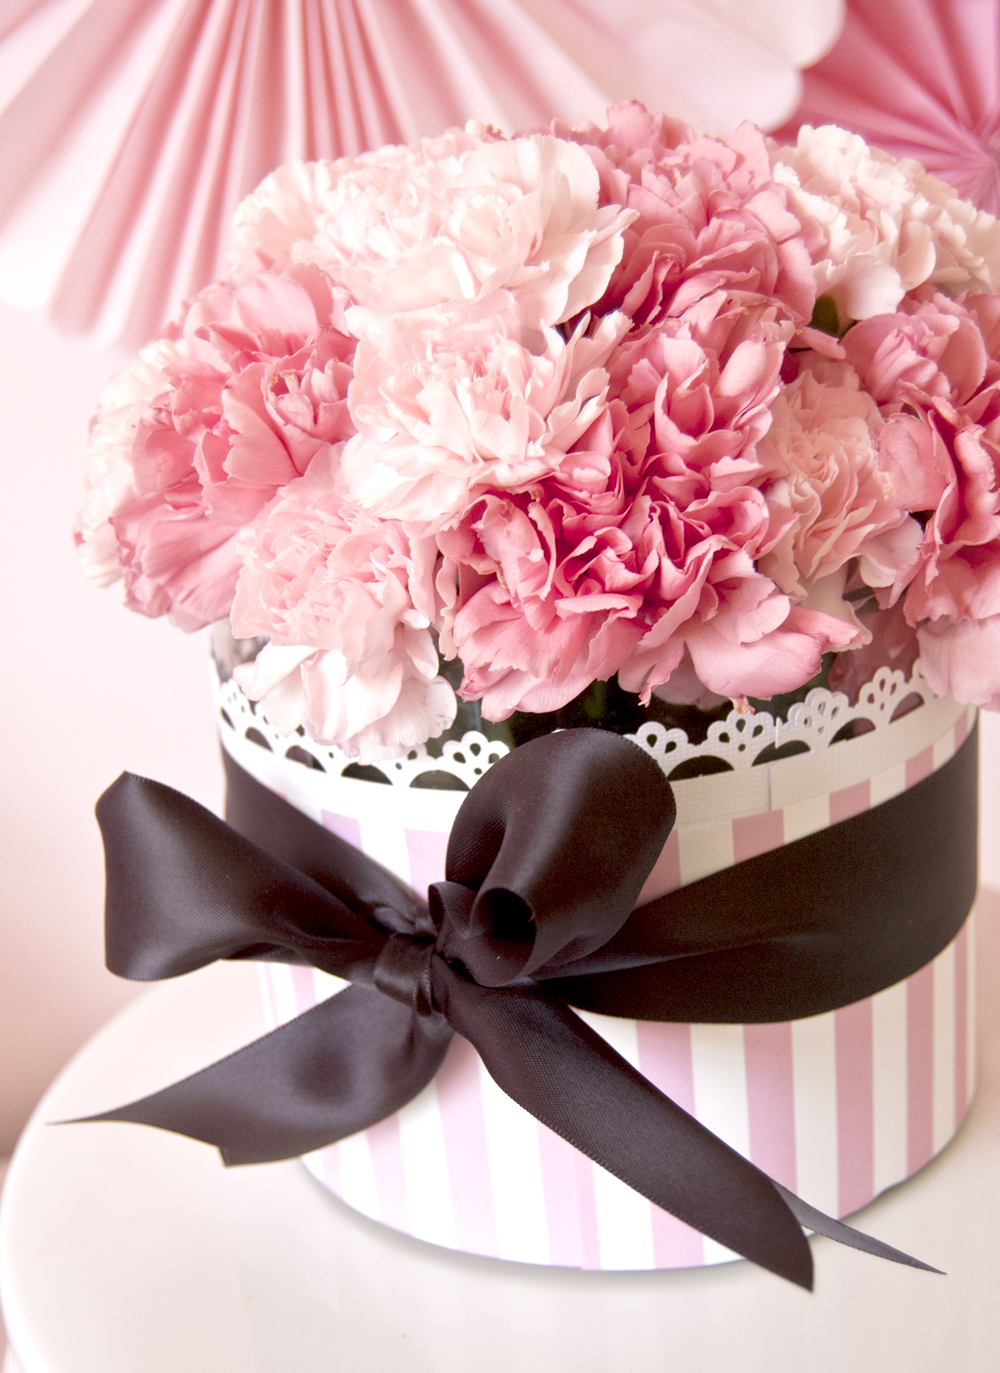 Cute Pink Flower Wedding Centerpieces Ideas (Image 4 of 13)